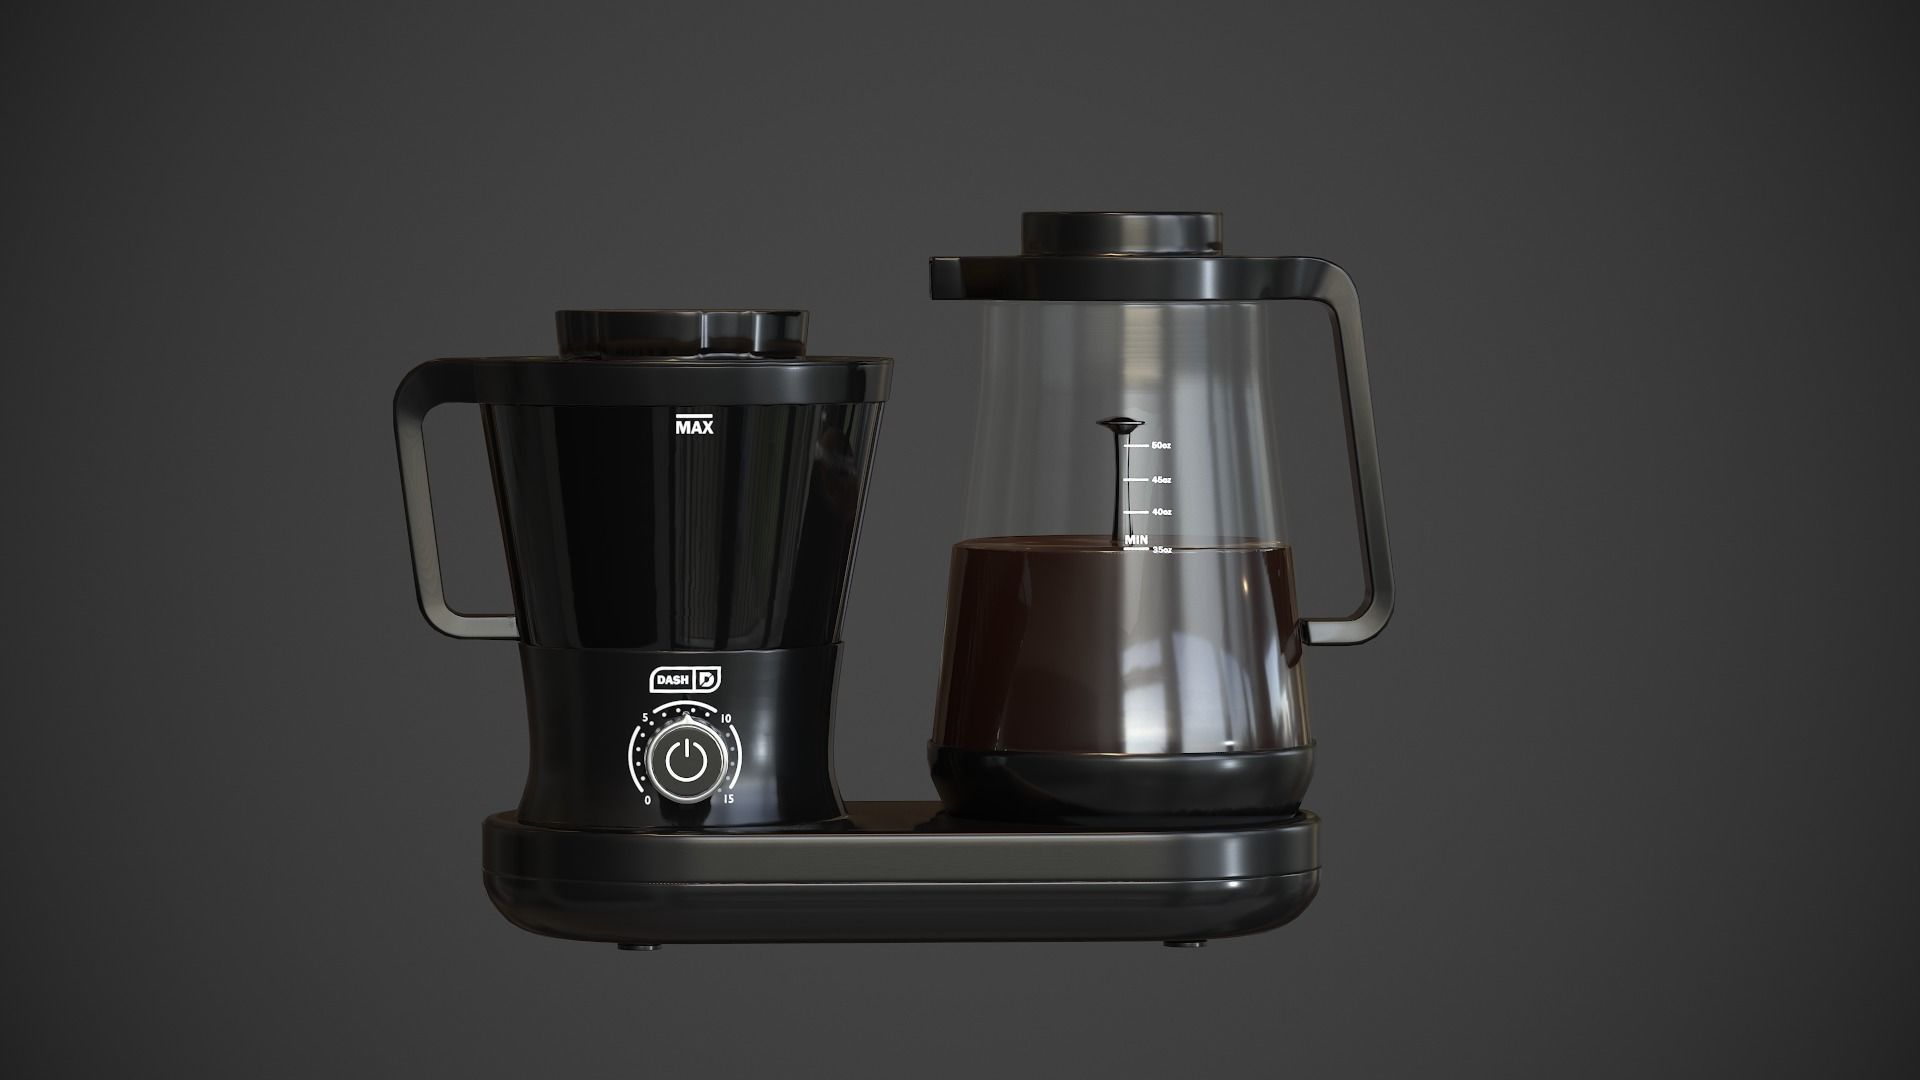 Dash Rapid Coffe maker